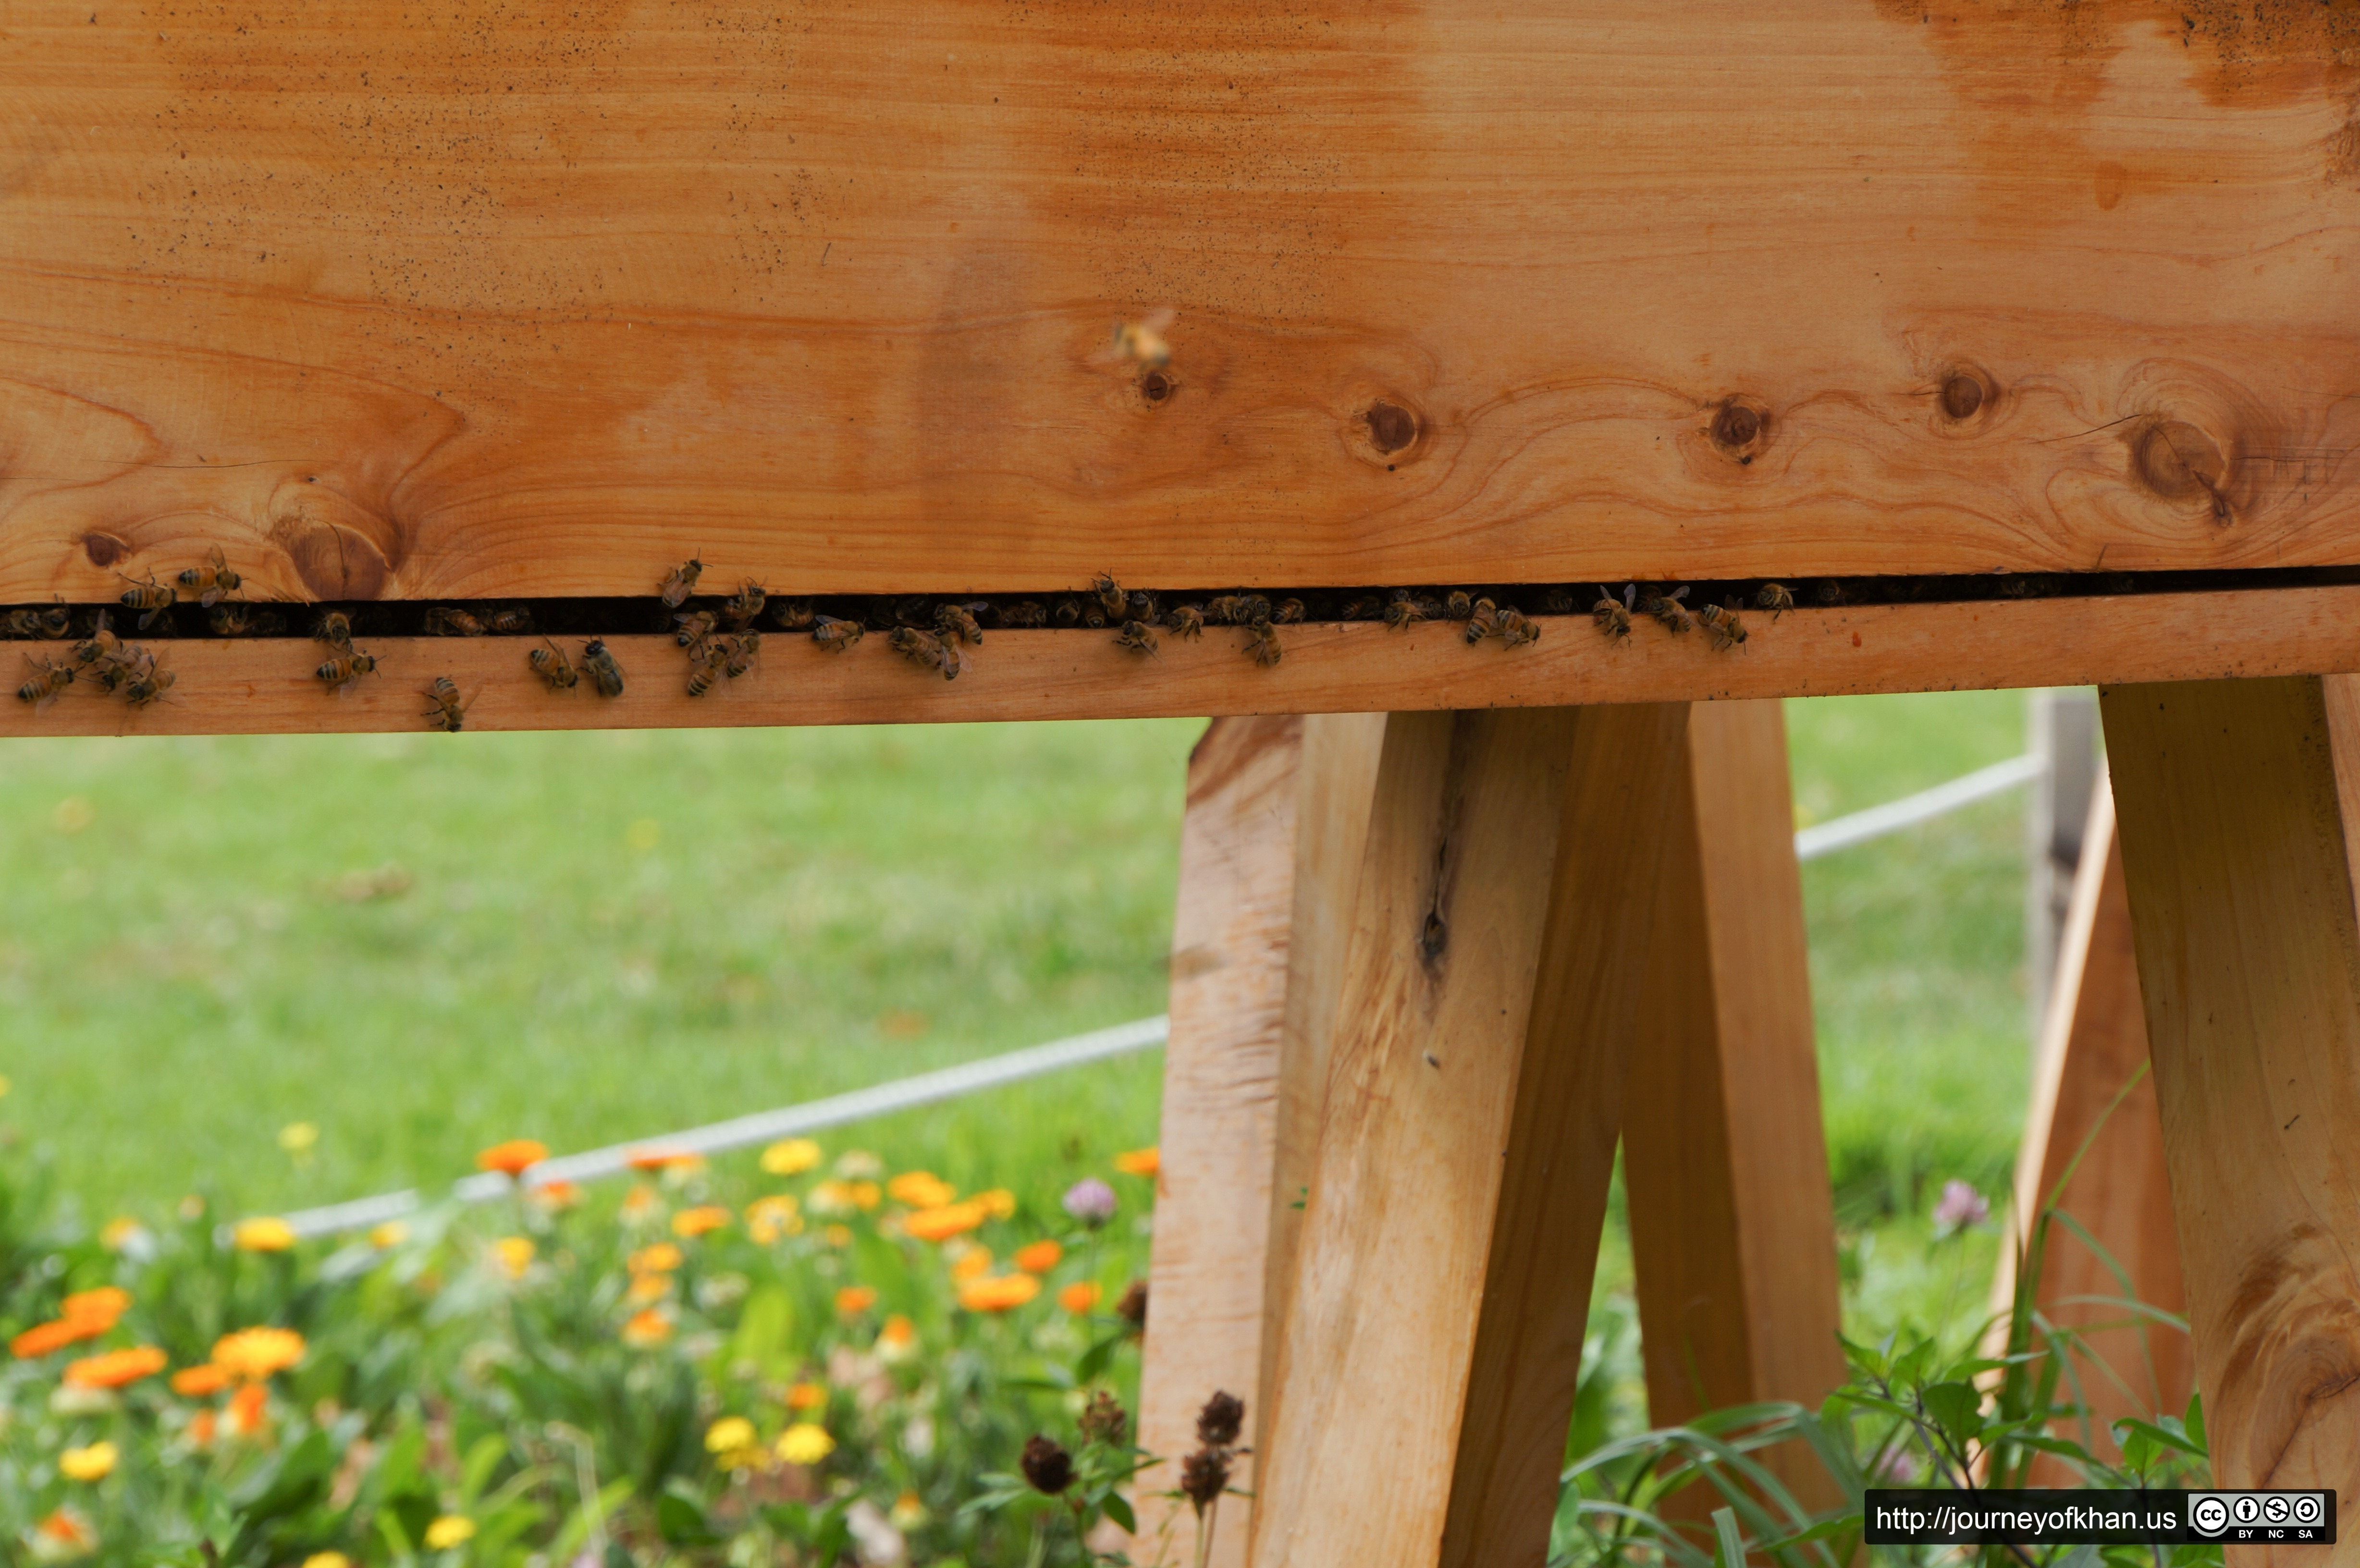 Bees in a Hive (High Resolution)